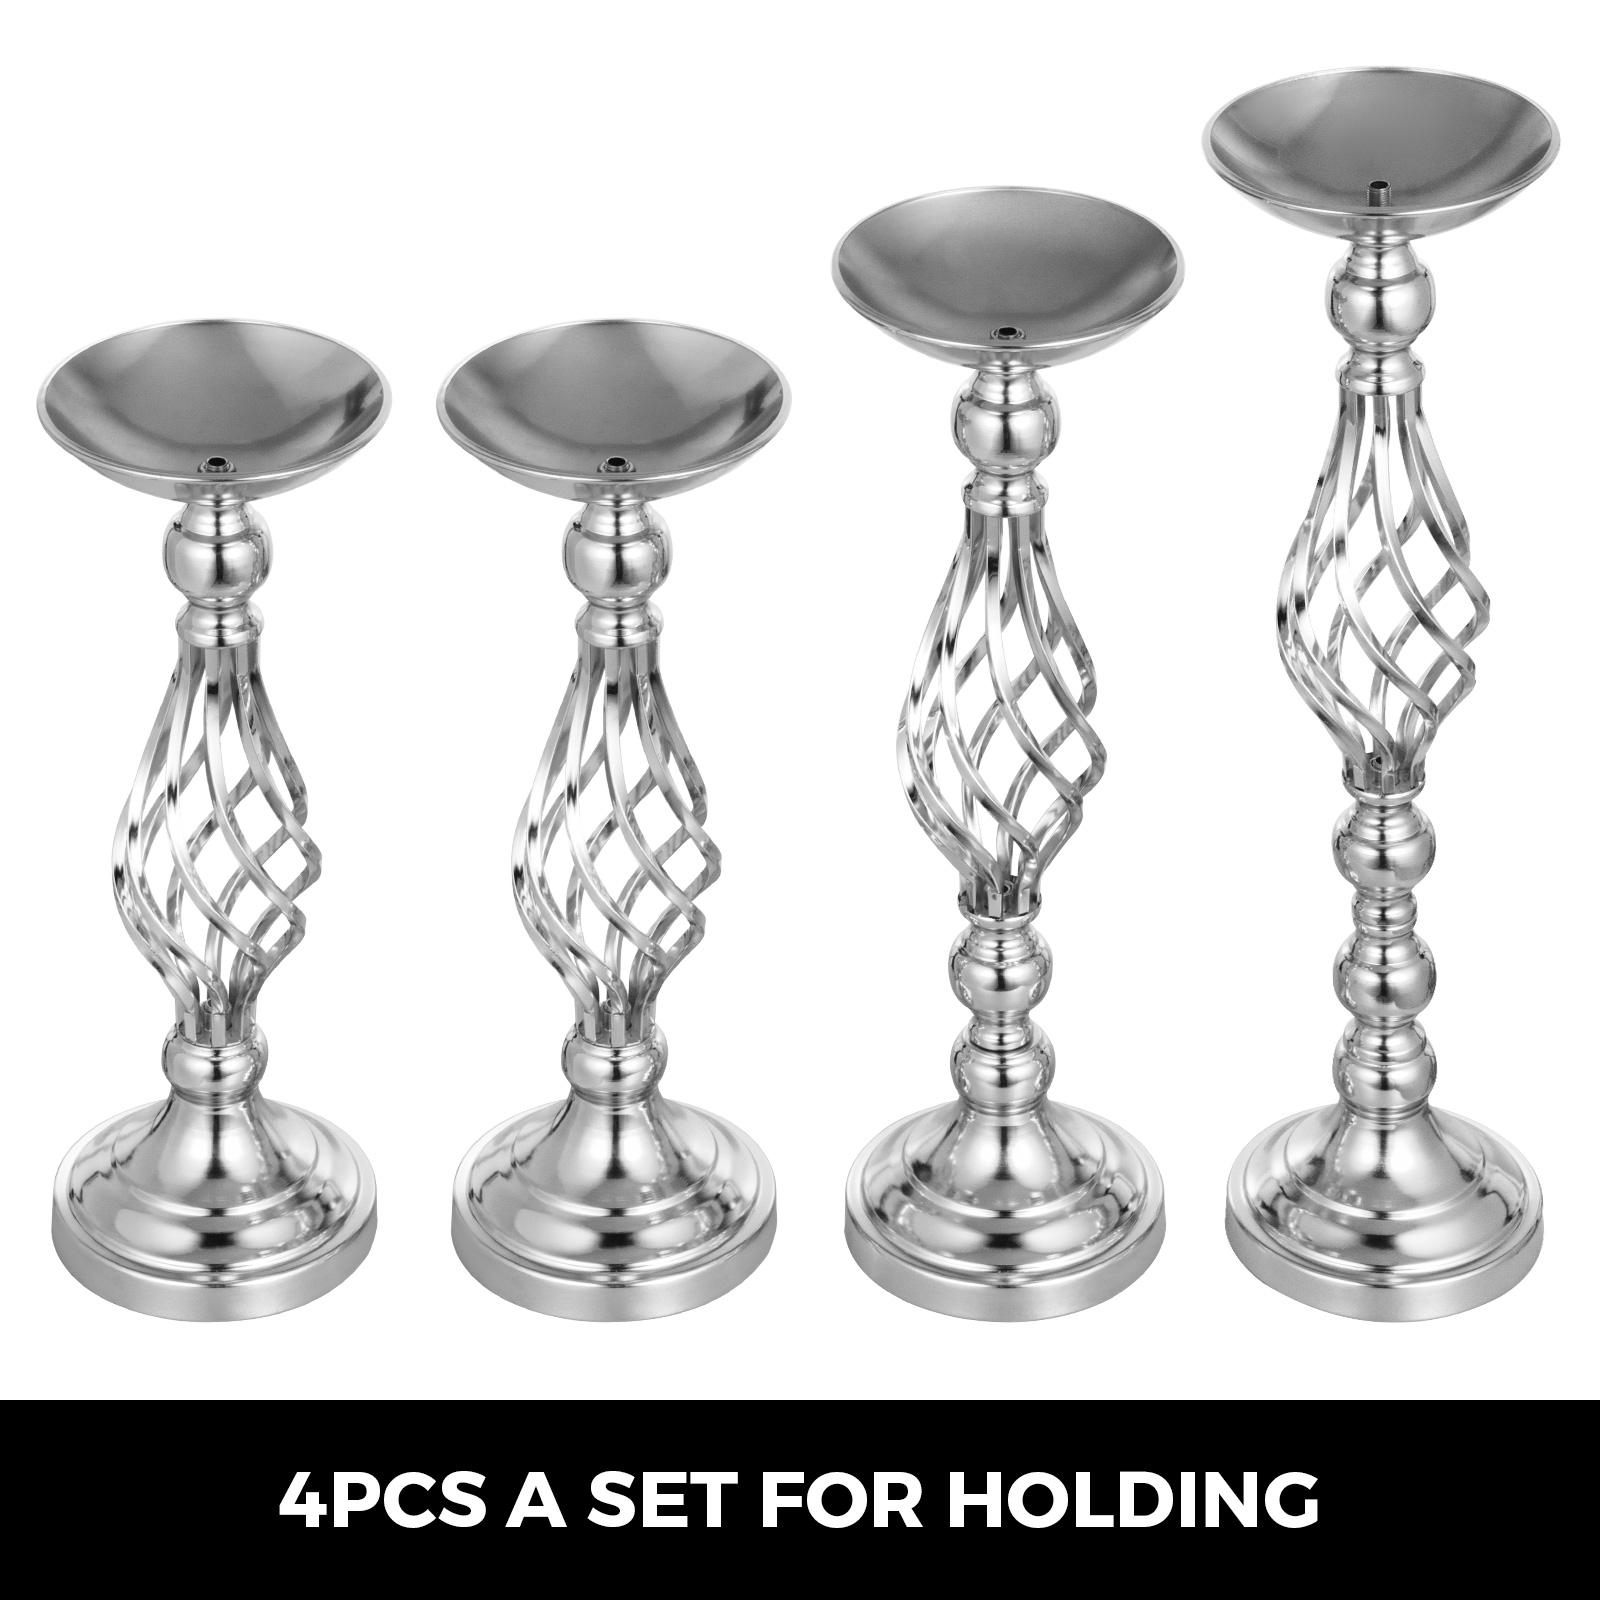 Flower-Rack-for-Wedding-Metal-Candle-Stand-4-11pcs-Centerpiece-Flower-Vase thumbnail 88